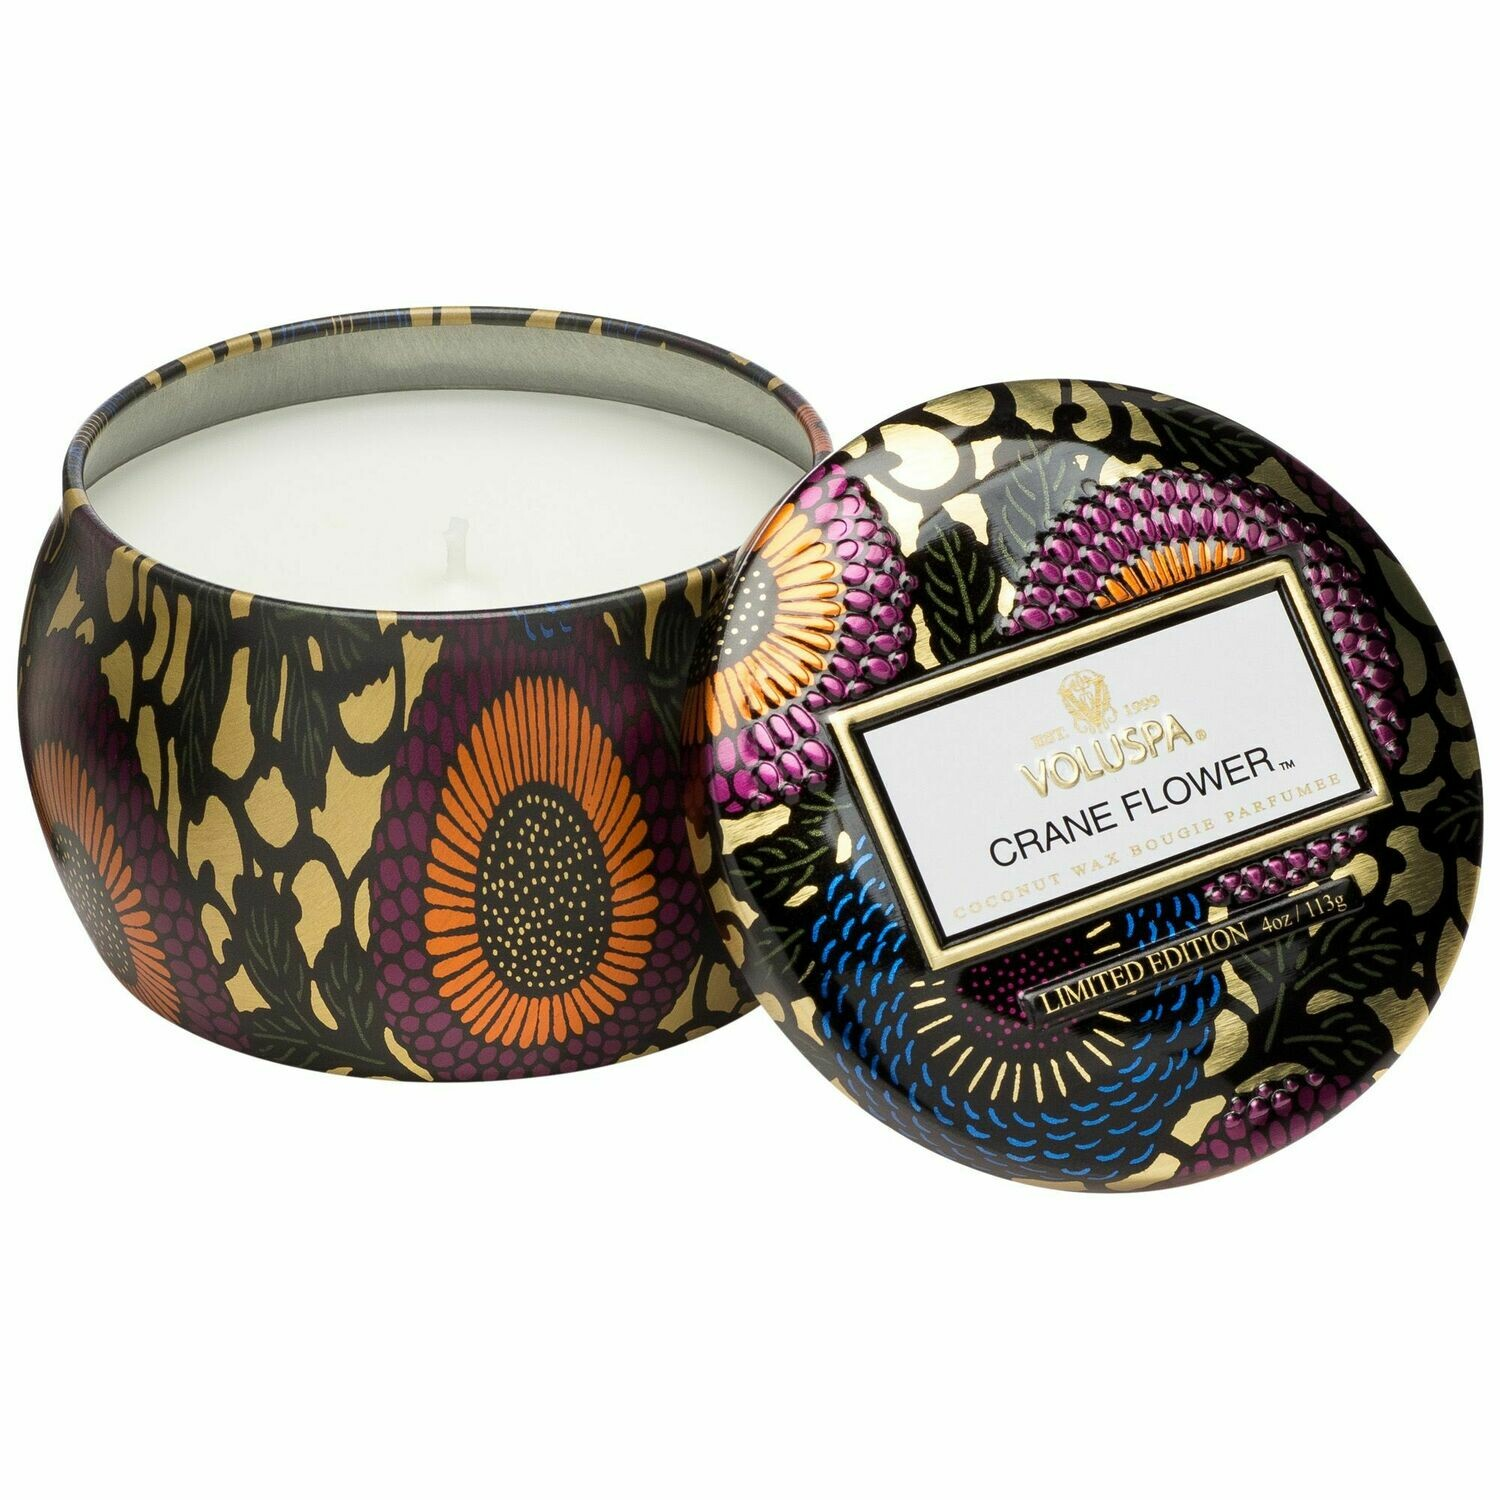 Crane Flower Candle - Voluspa Petite Tin Candle